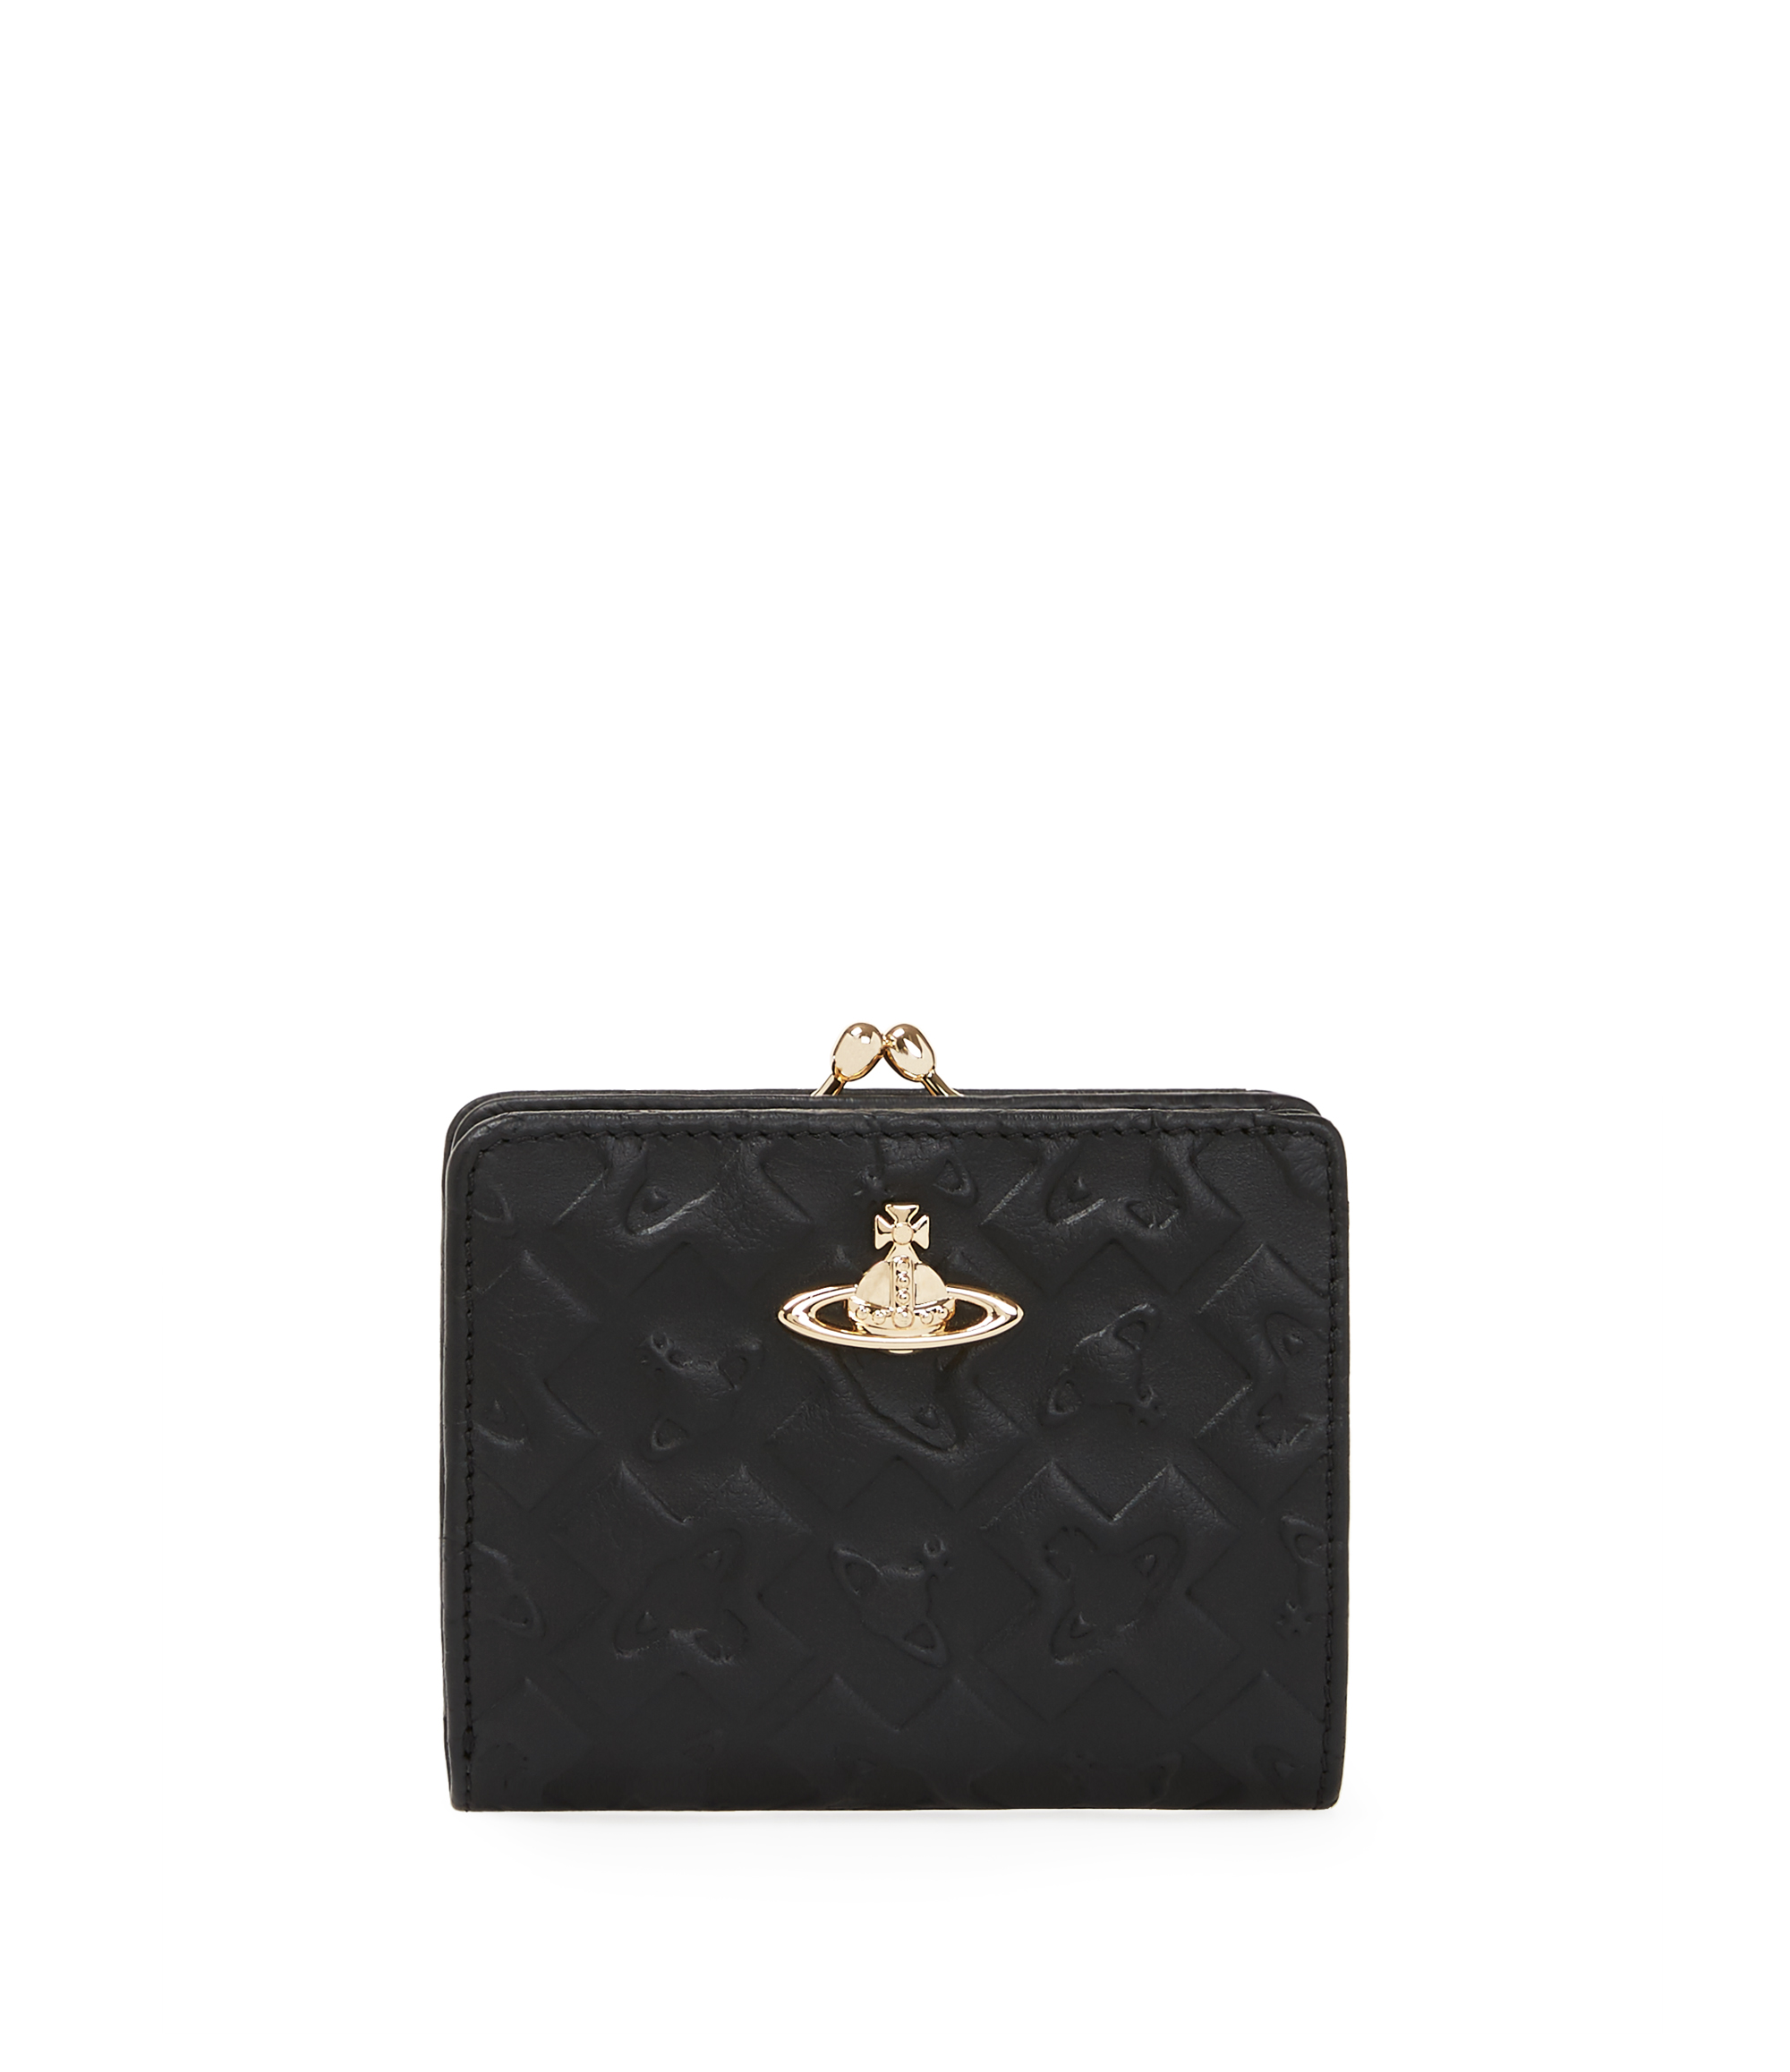 Vivienne Westwood Harrow Wallet With Coin Pocket 321514 Black